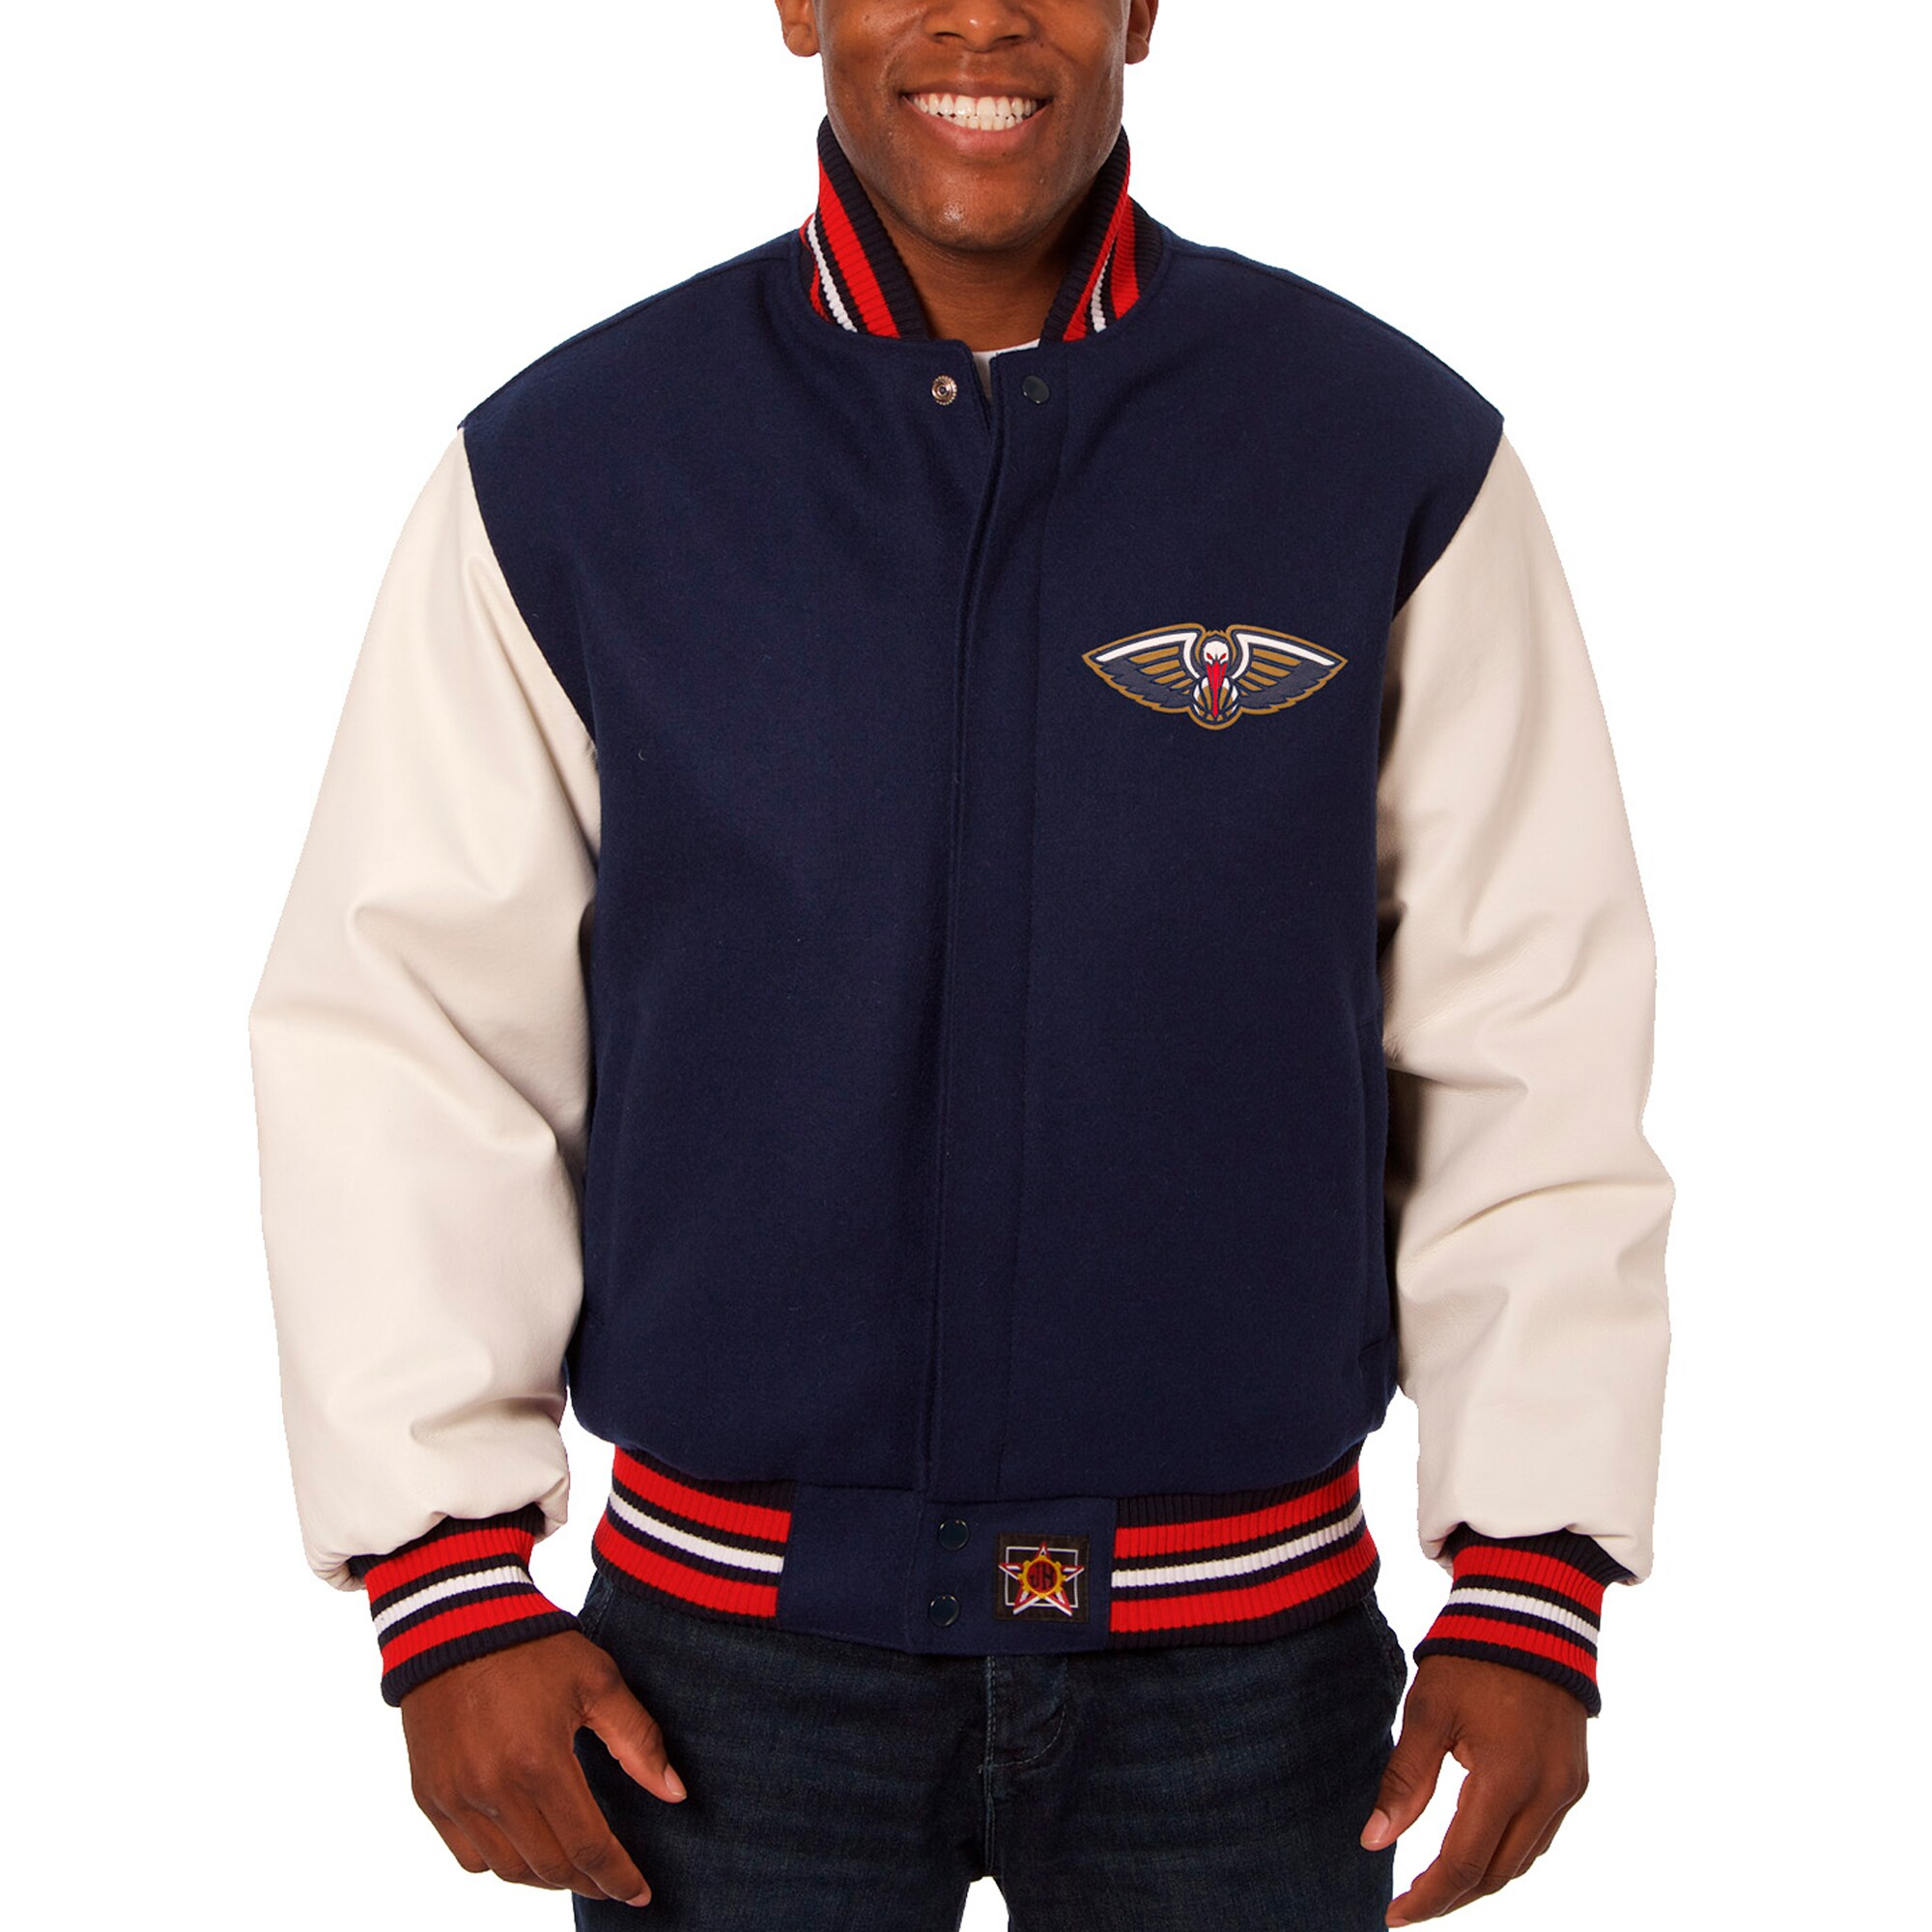 New Orleans Pelicans JH Design Big & Tall Wool & Leather Full-Snap Jacket - Navy/White